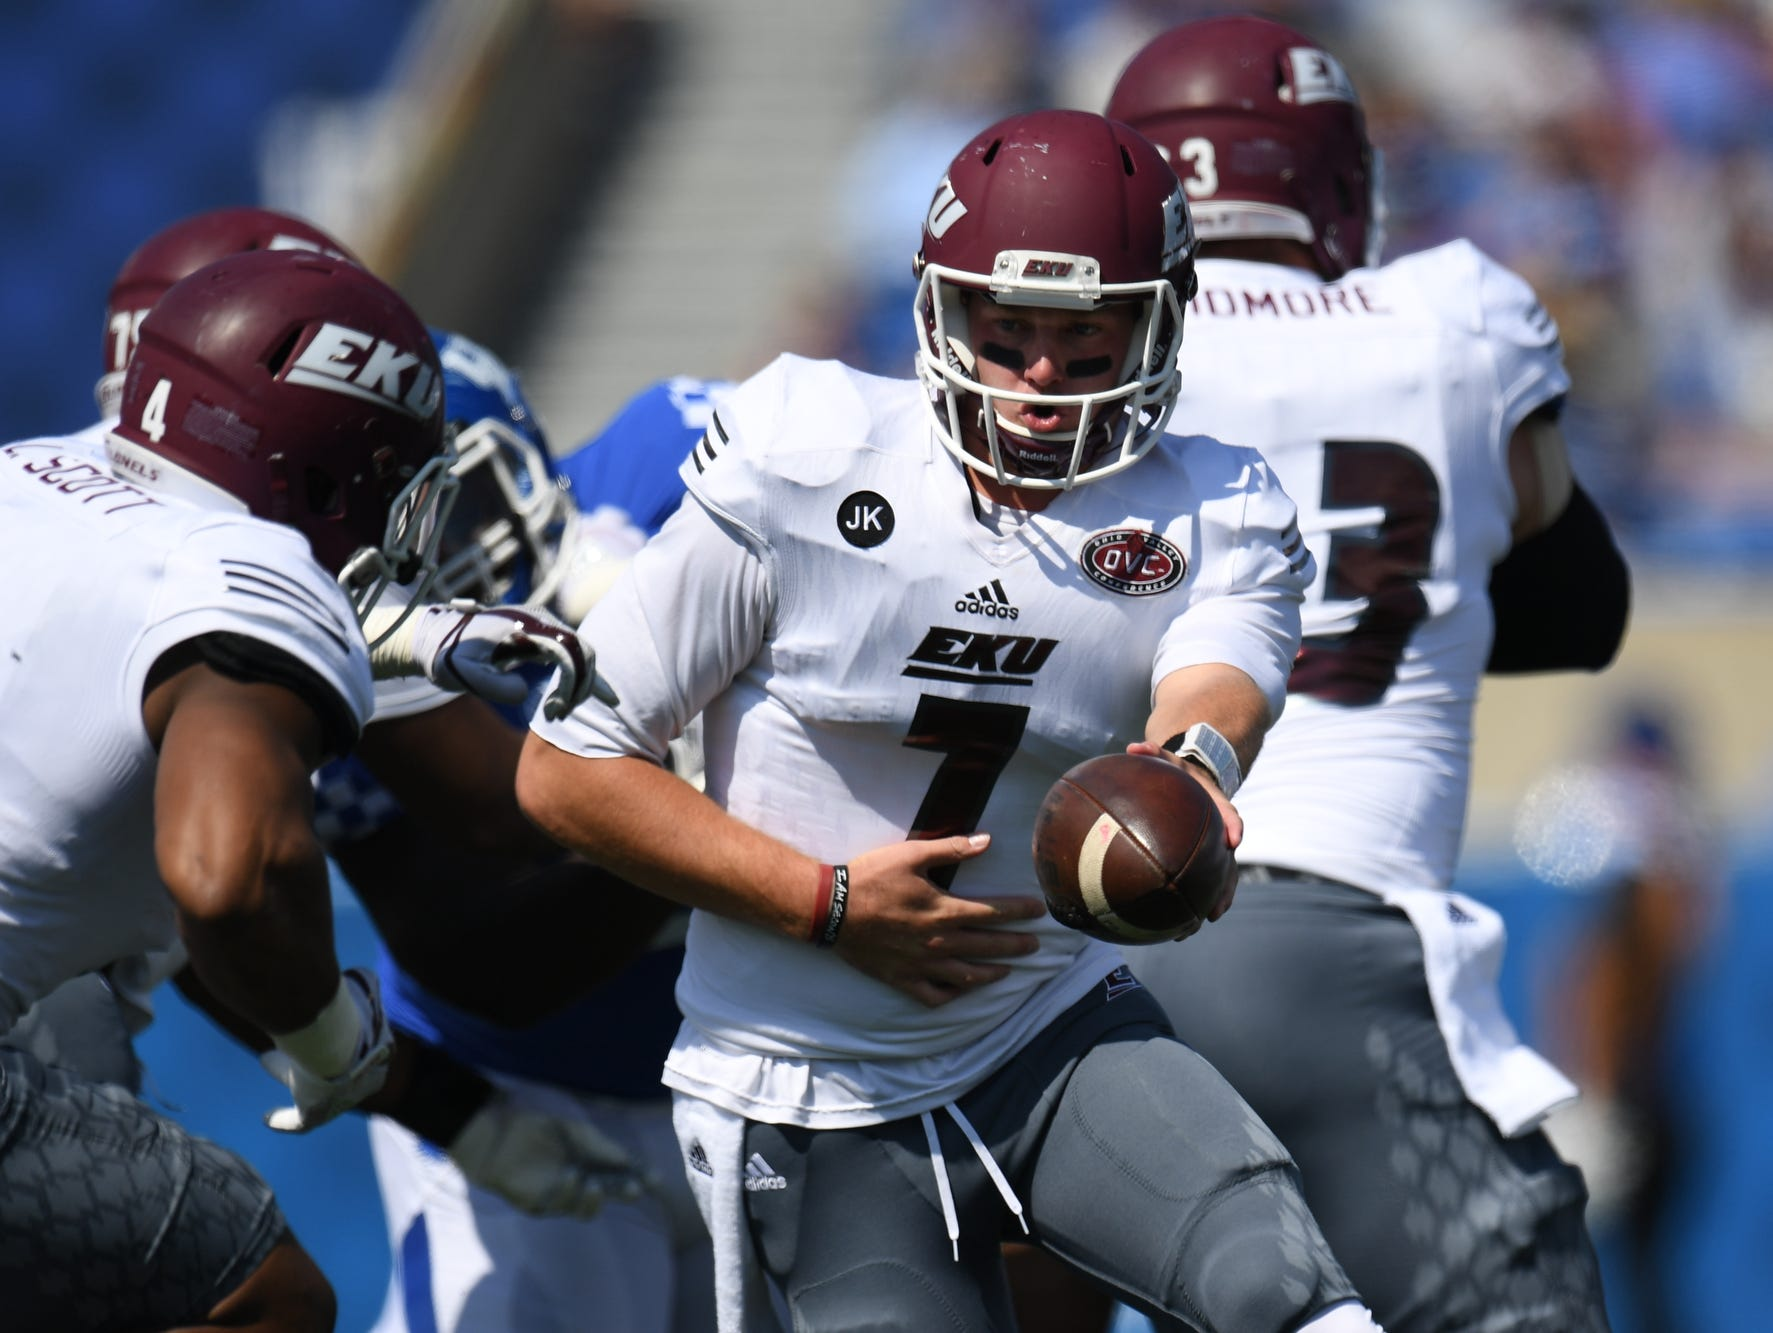 EKU QB Tim Boyle hands off the ball during the University of Kentucky football game against Eastern Kentucky University in Lexington, KY on Saturday, September 9, 2017.